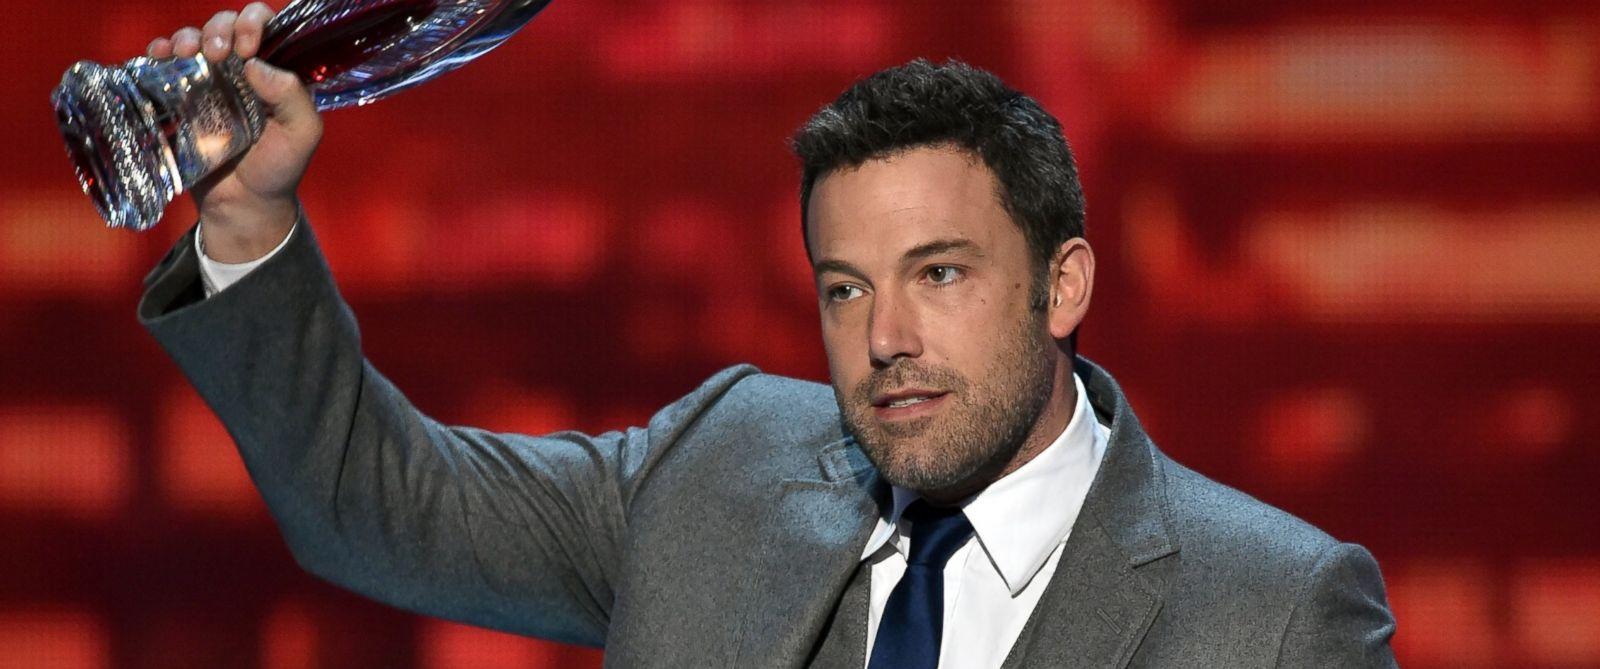 PHOTO: Actor Ben Affleck speaks onstage at The 41st Annual Peoples Choice Awards at Nokia Theatre LA Live, Jan. 7, 2015 in Los Angeles.